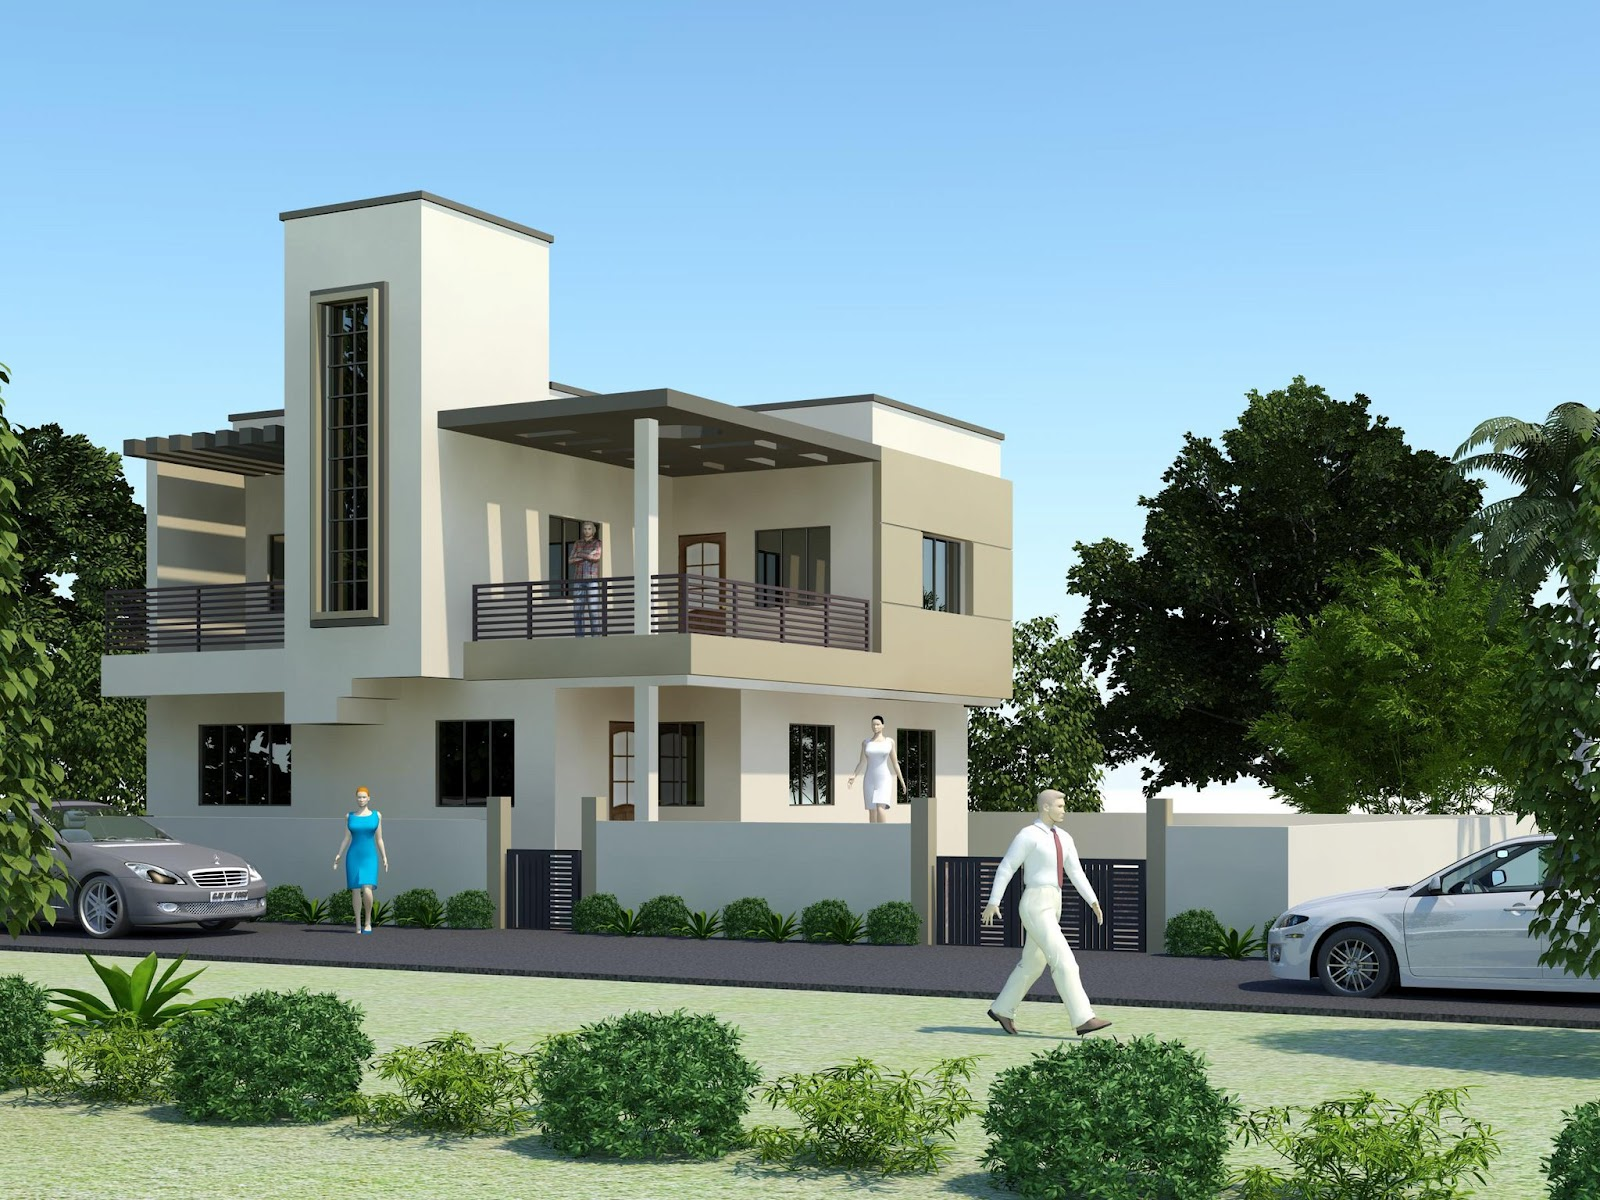 New home designs latest modern homes exterior designs for Latest home